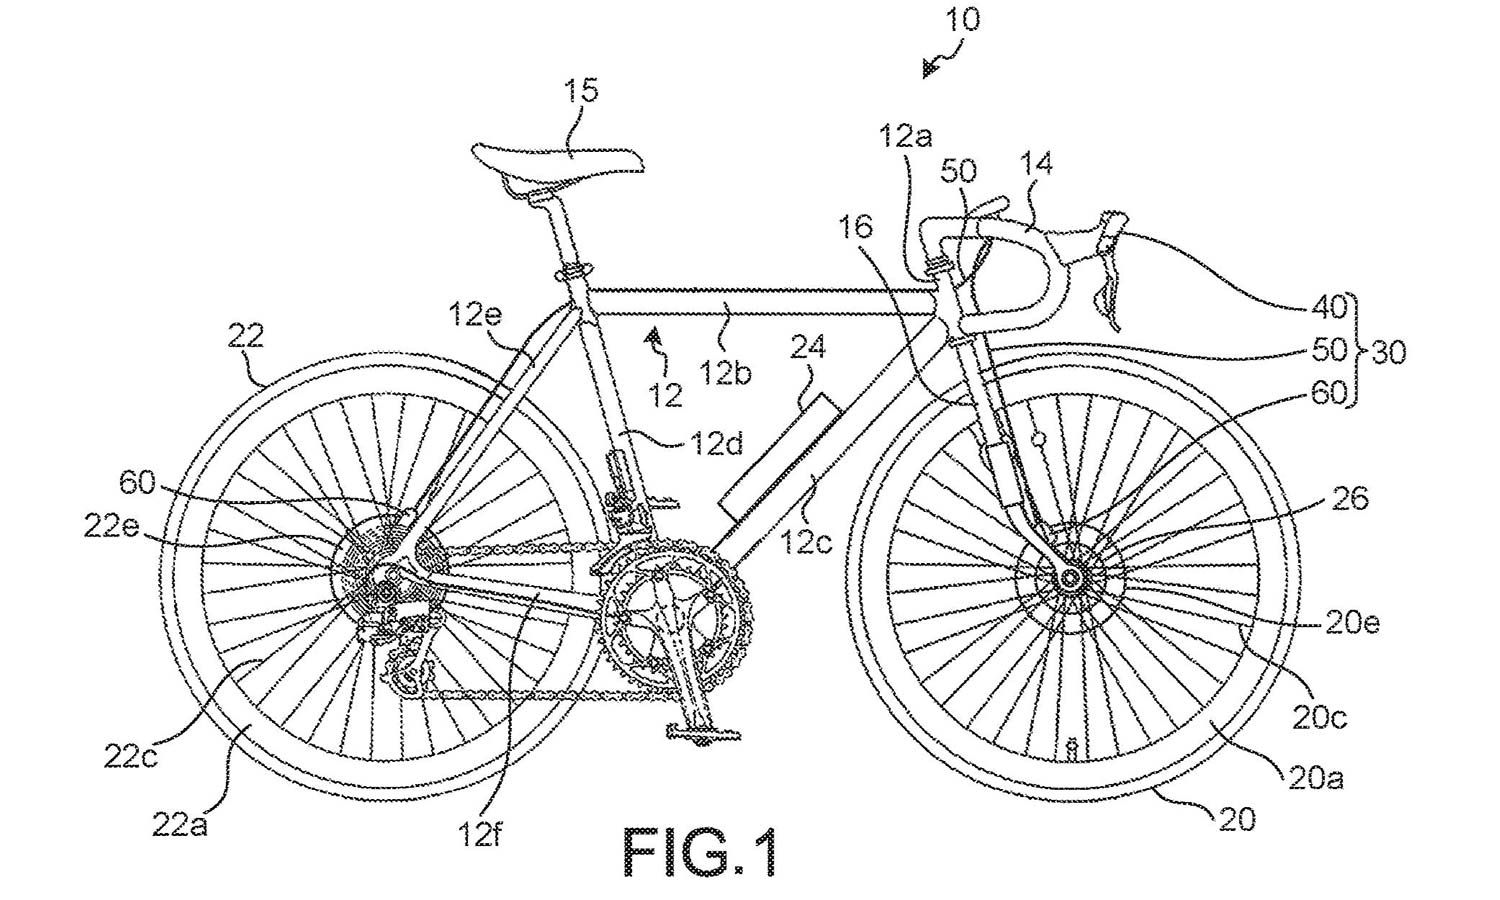 shimano electronically controlled brakes for road bikes patent drawing concept